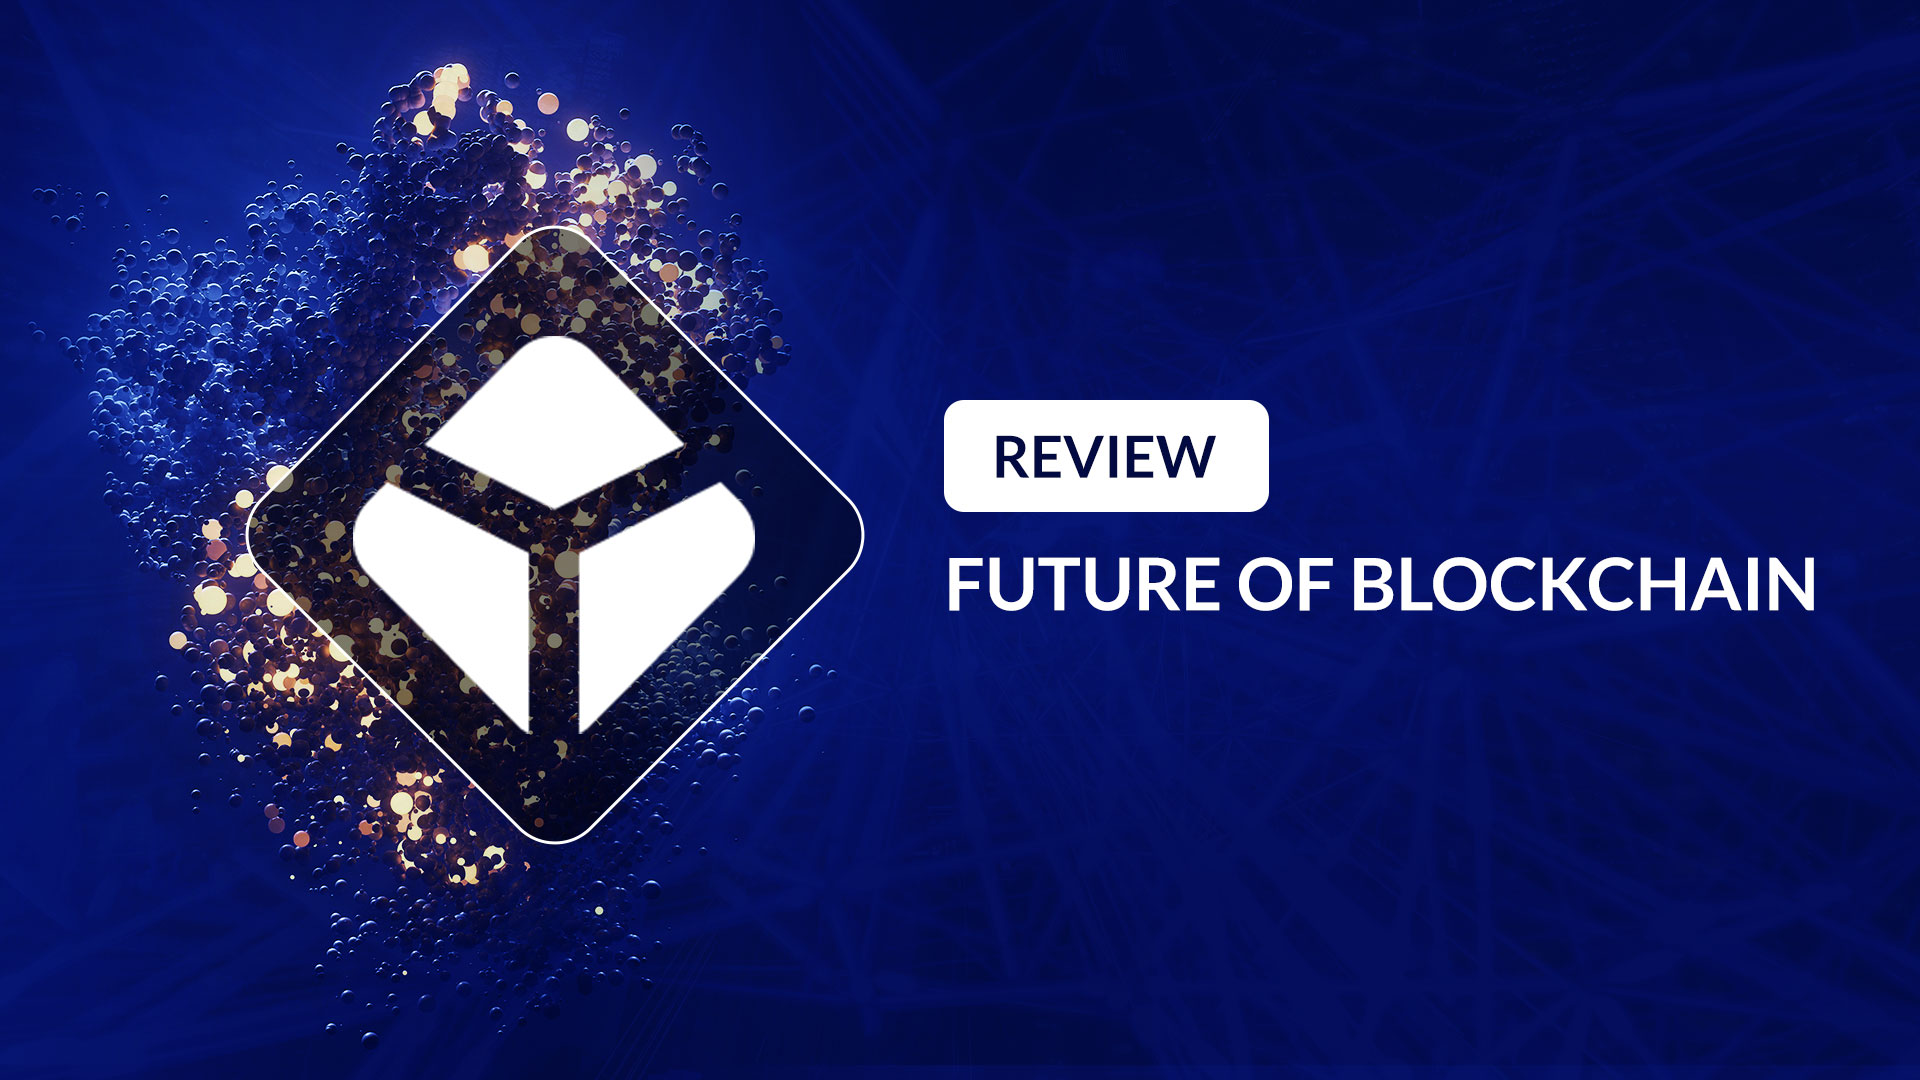 Review and Future of Blockchain